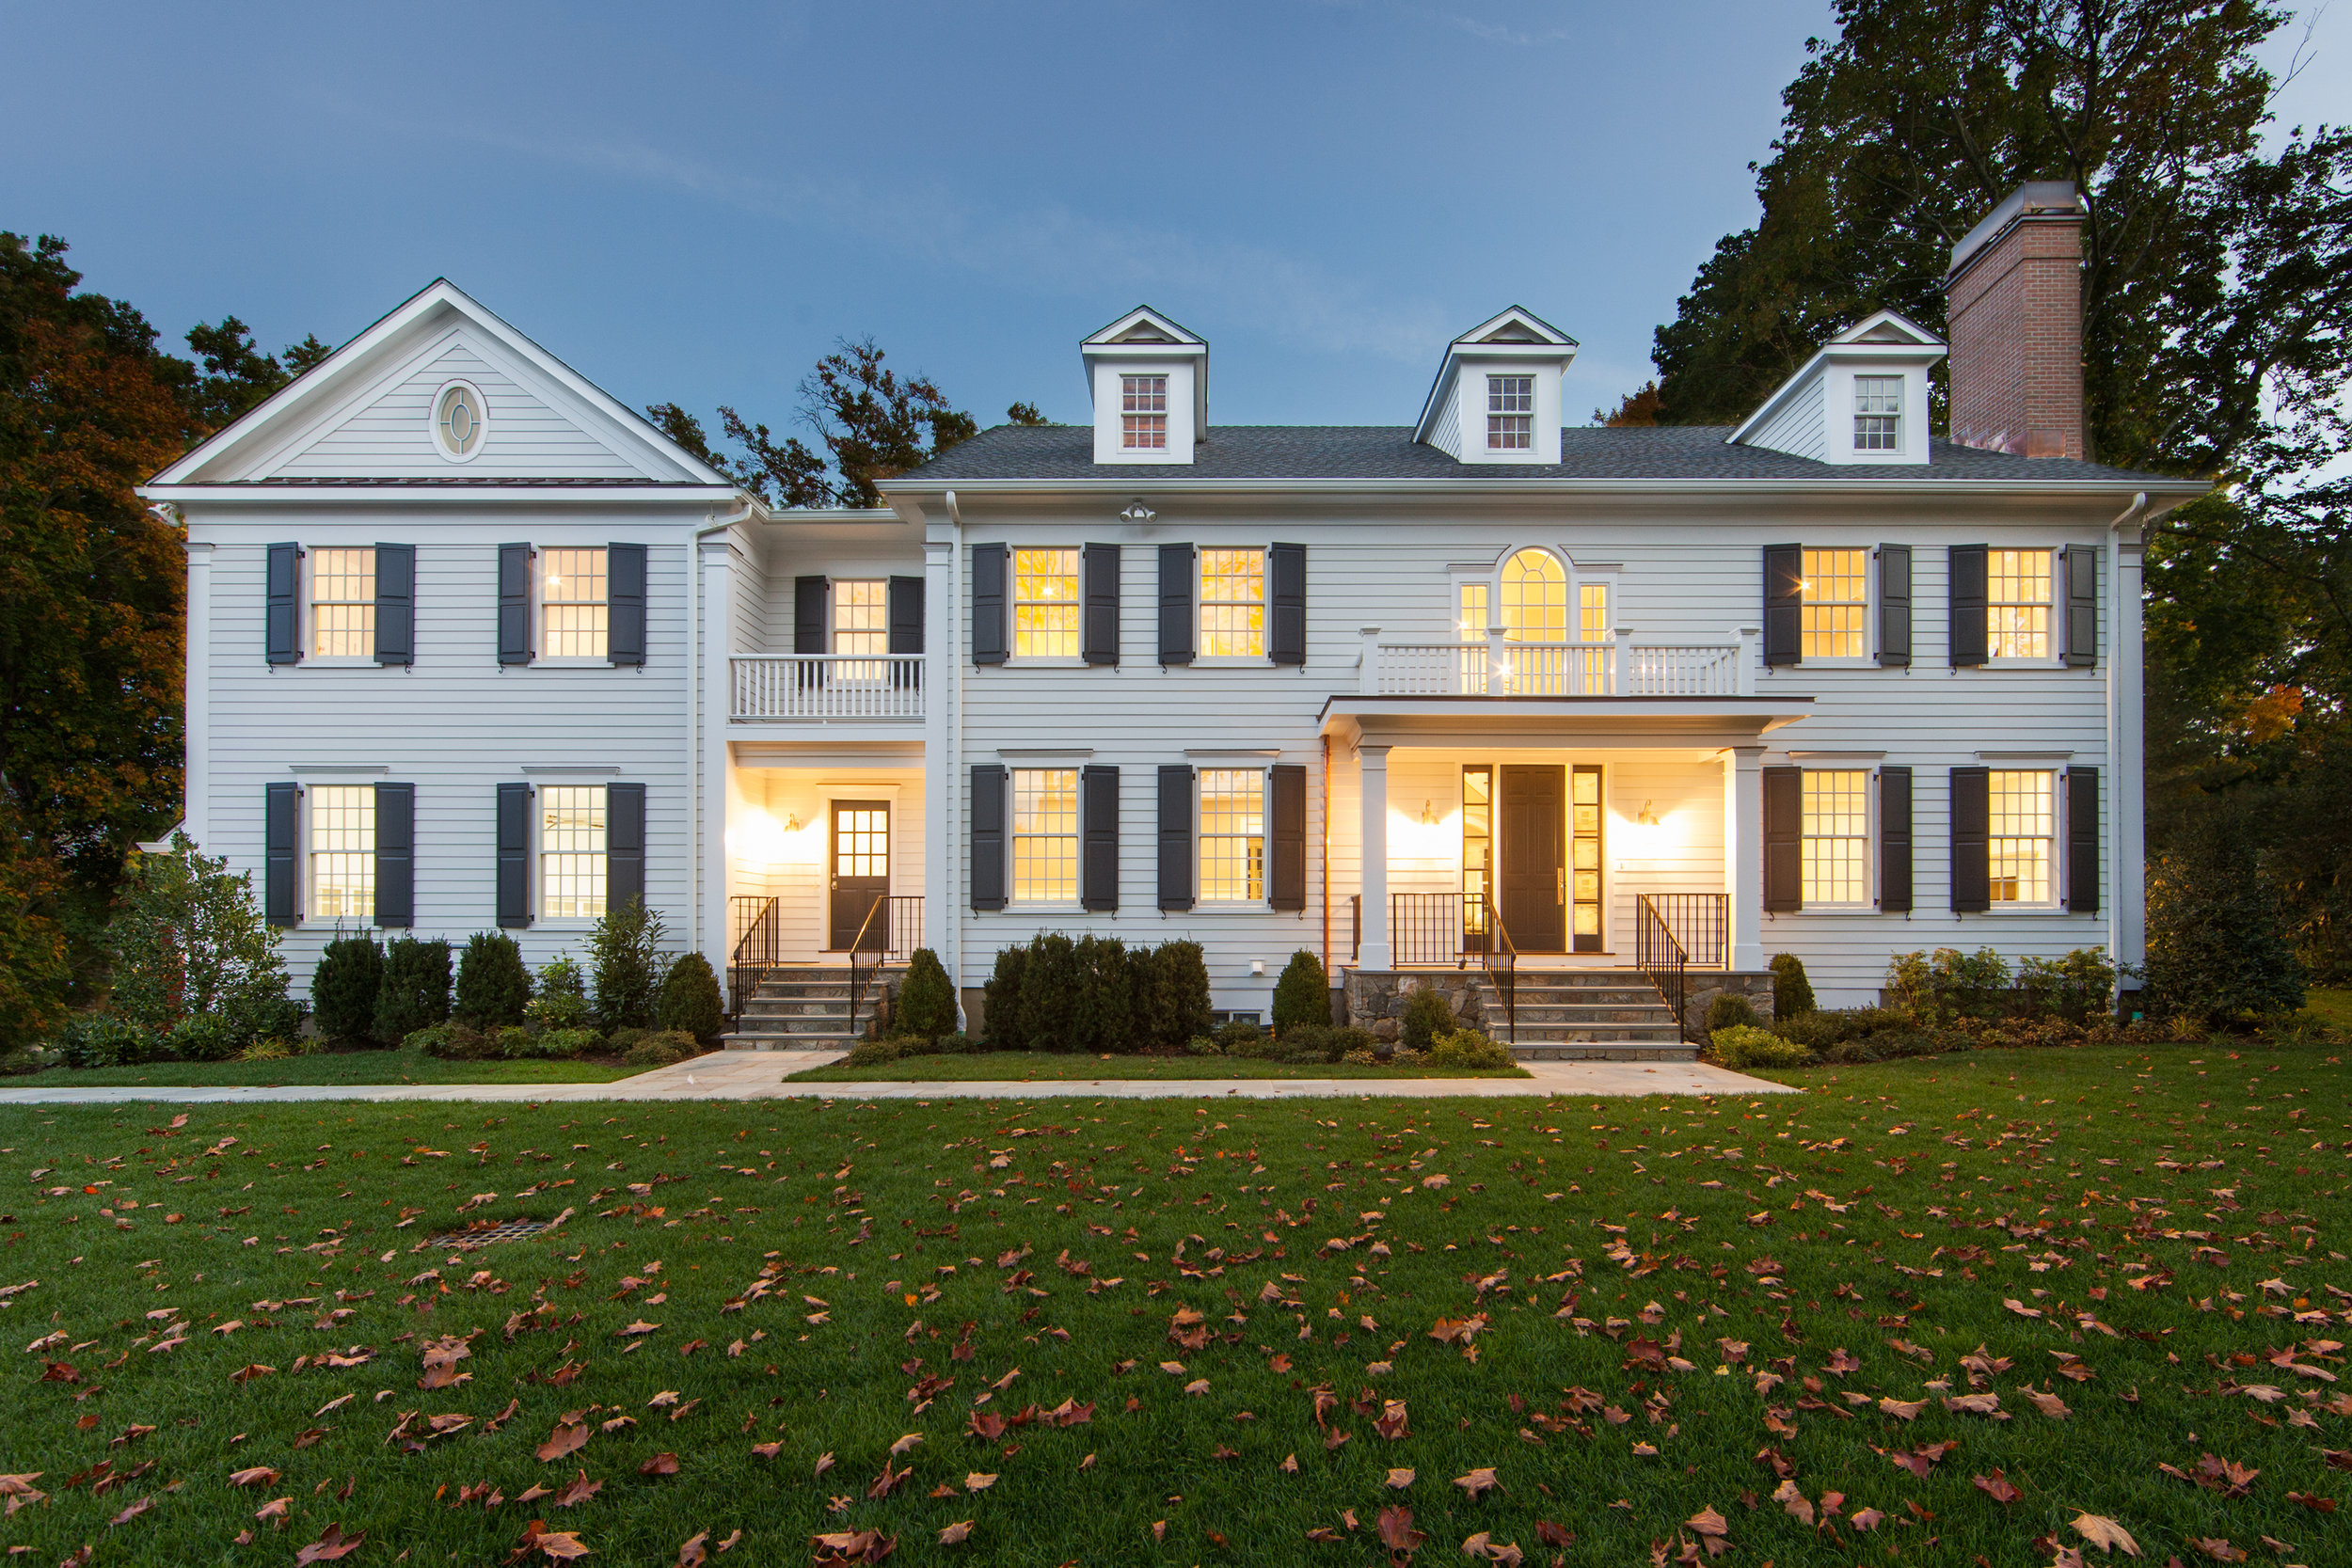 SOLD  3 Bradford Road Scarsdale, New York | Luxurious New Construction in Scarsdale's Quaker Ridge. Represented the Seller as the Listing Agent  (2017)